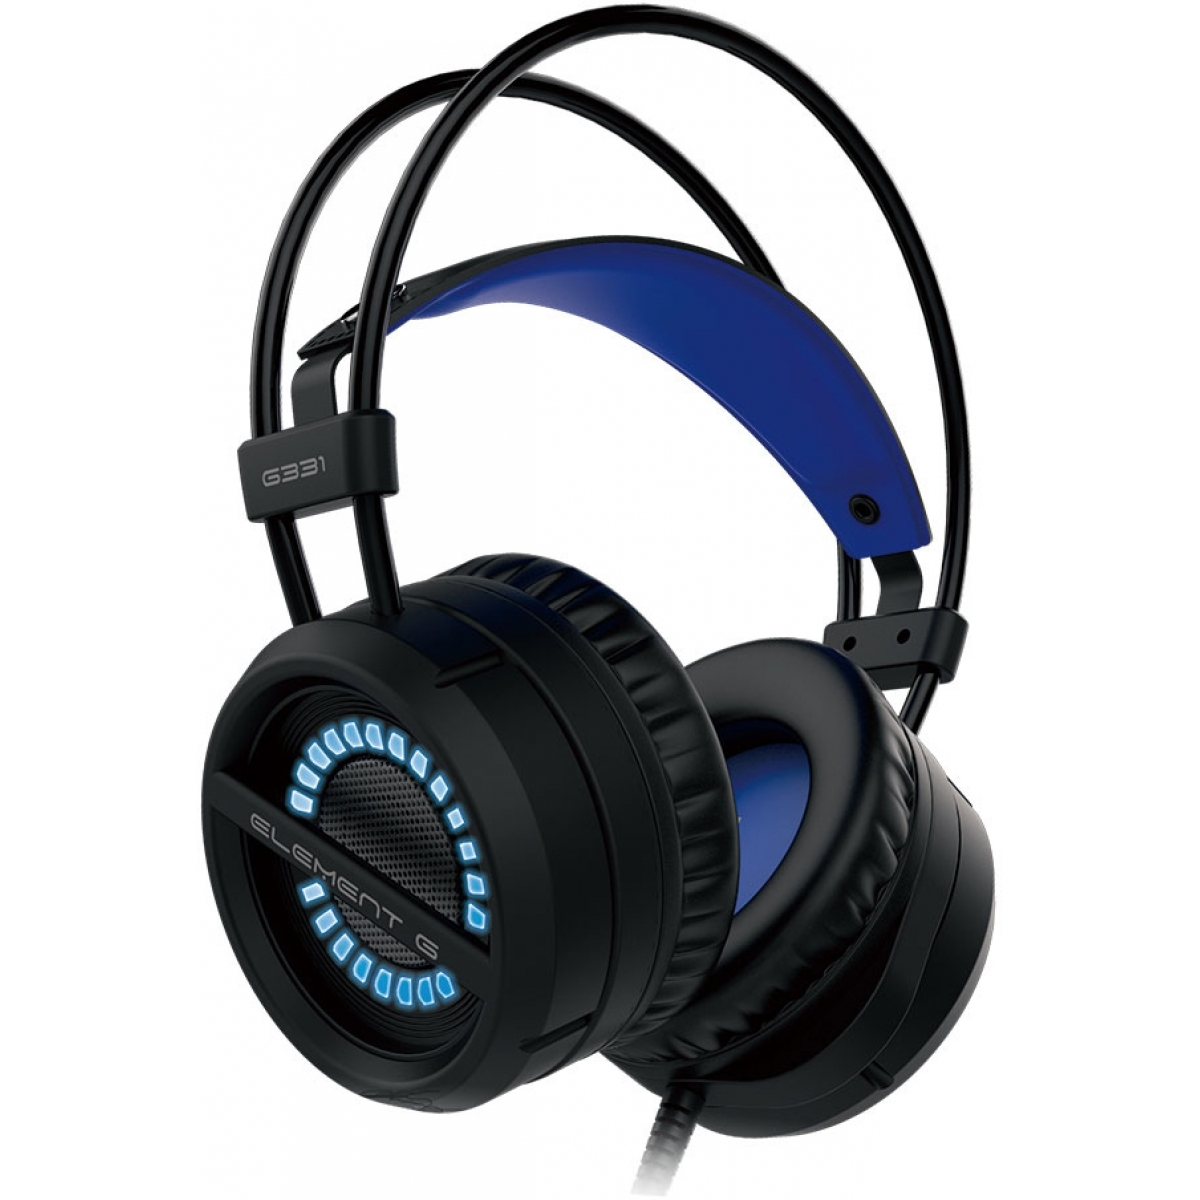 Headset Gamer Element G Single Color Azul G331